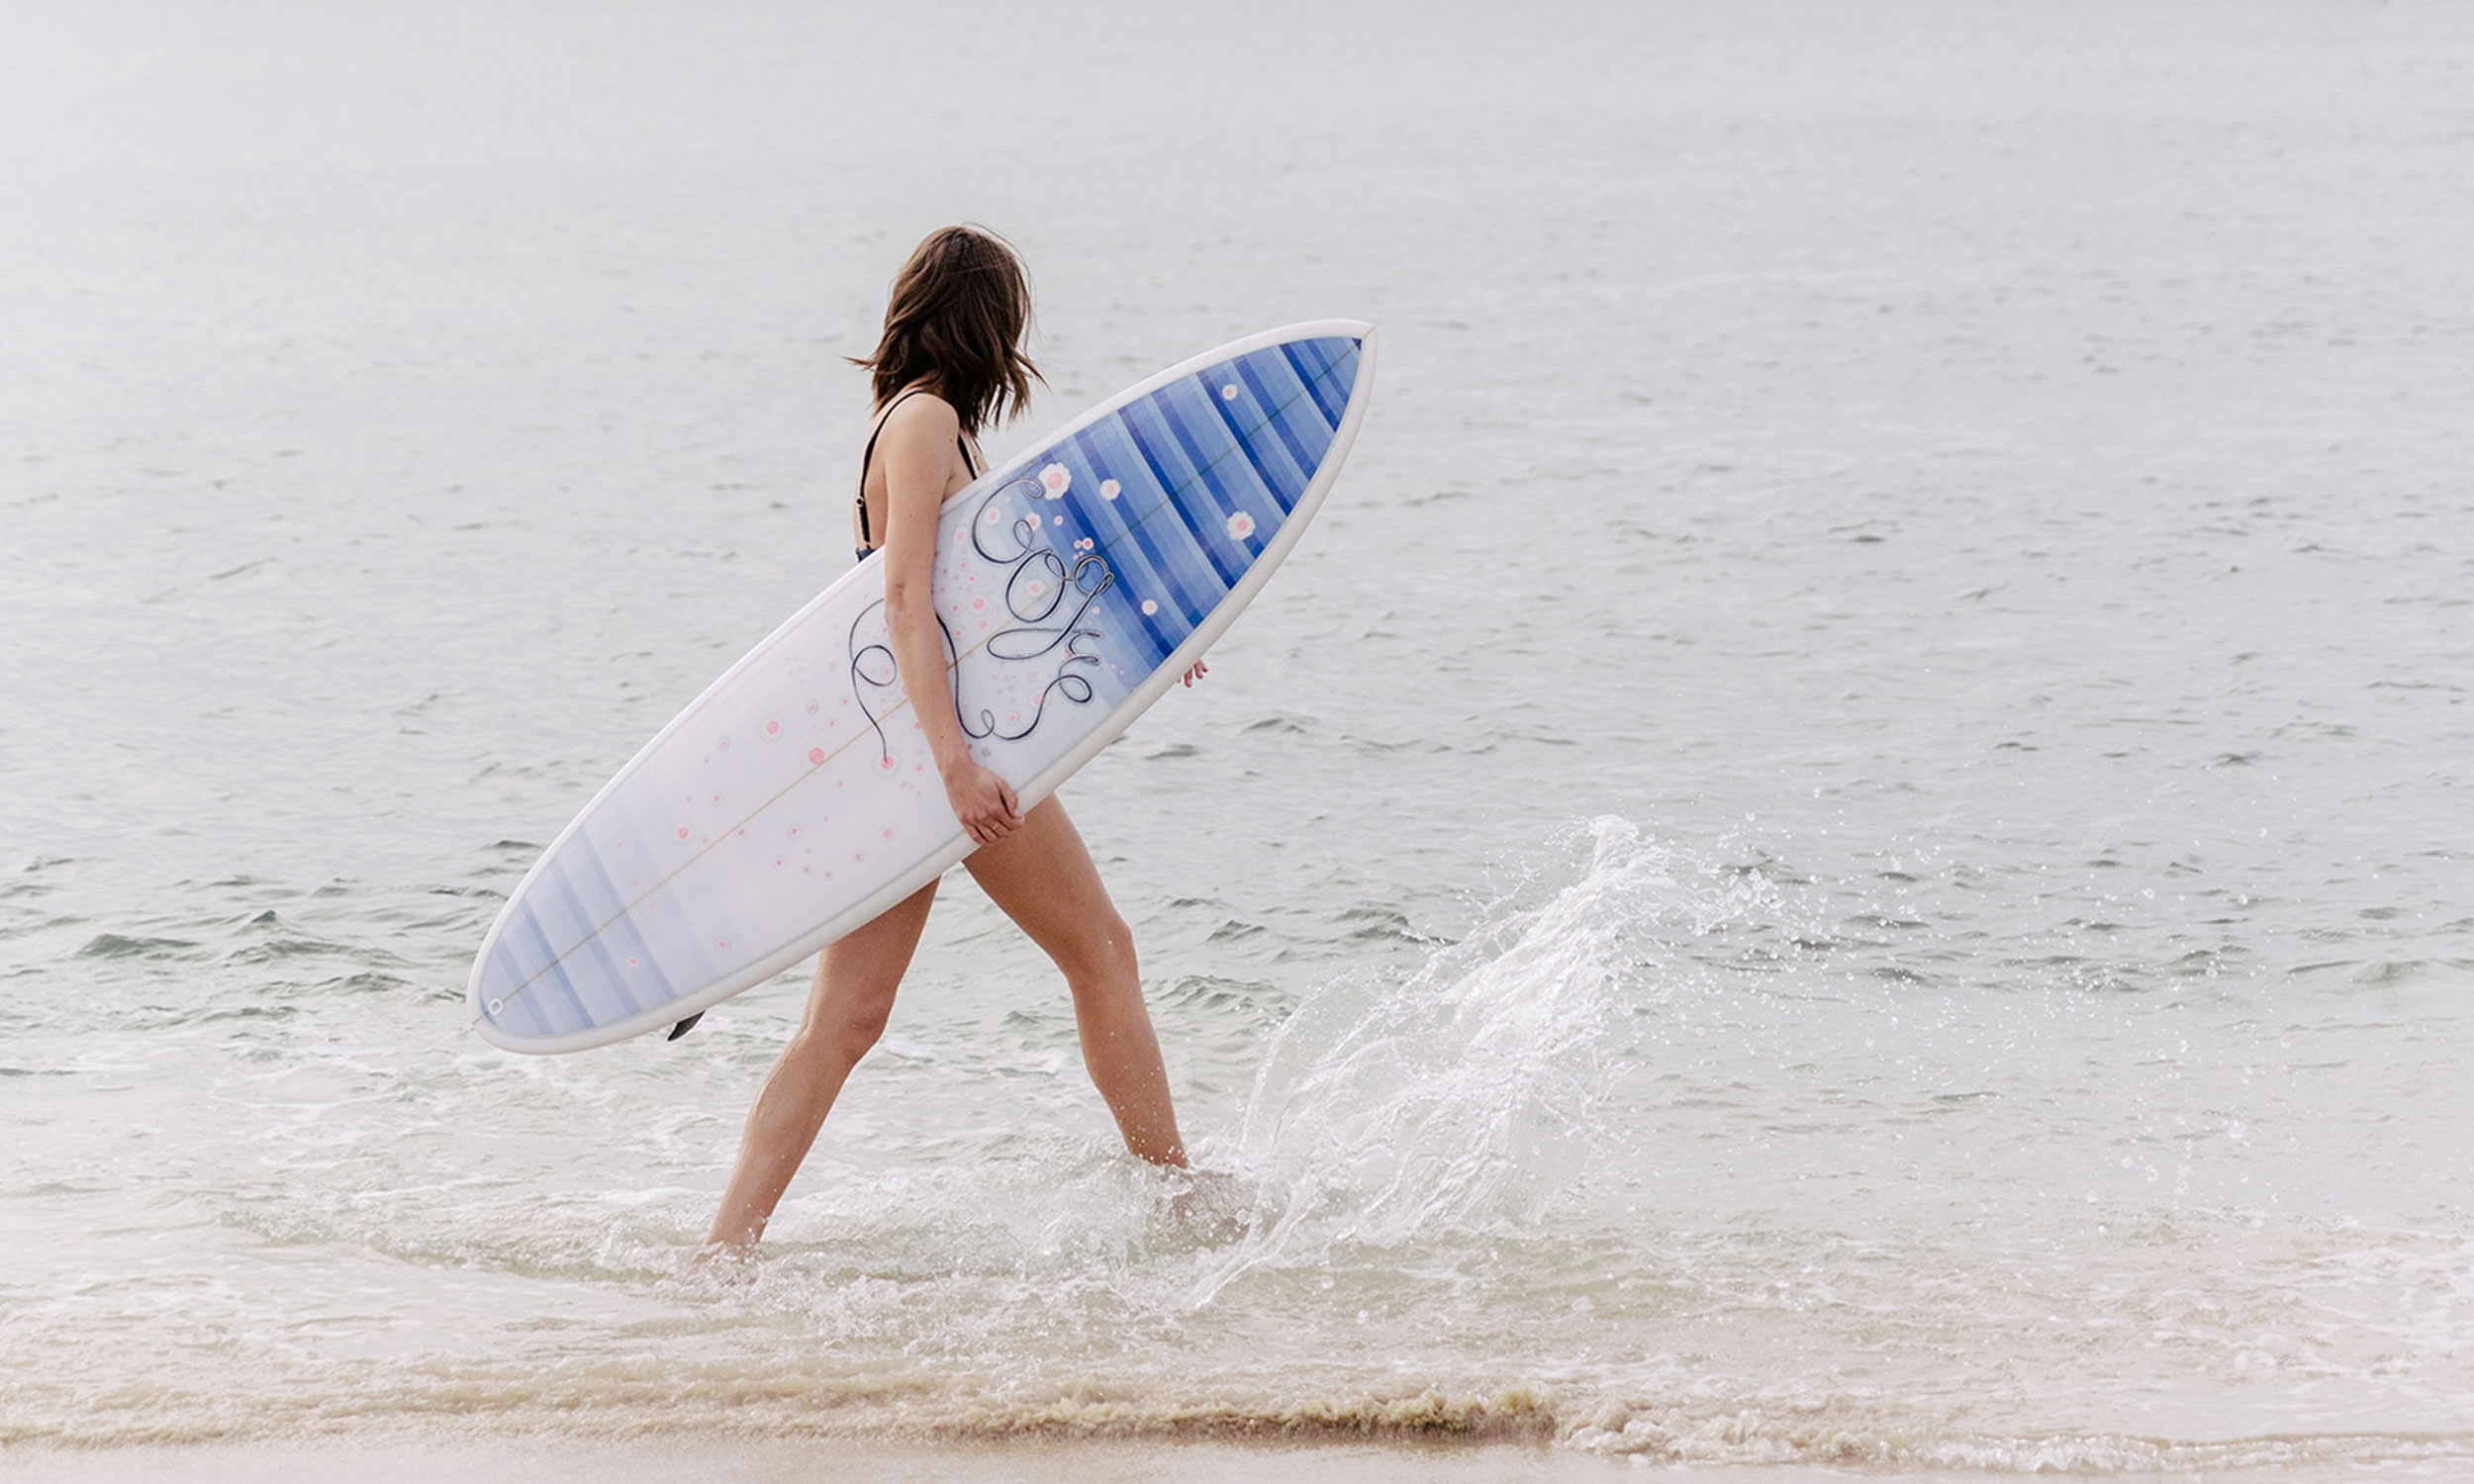 nusa-indah-surfboards-vogue-collection-georges-lapepe-crop.jpg